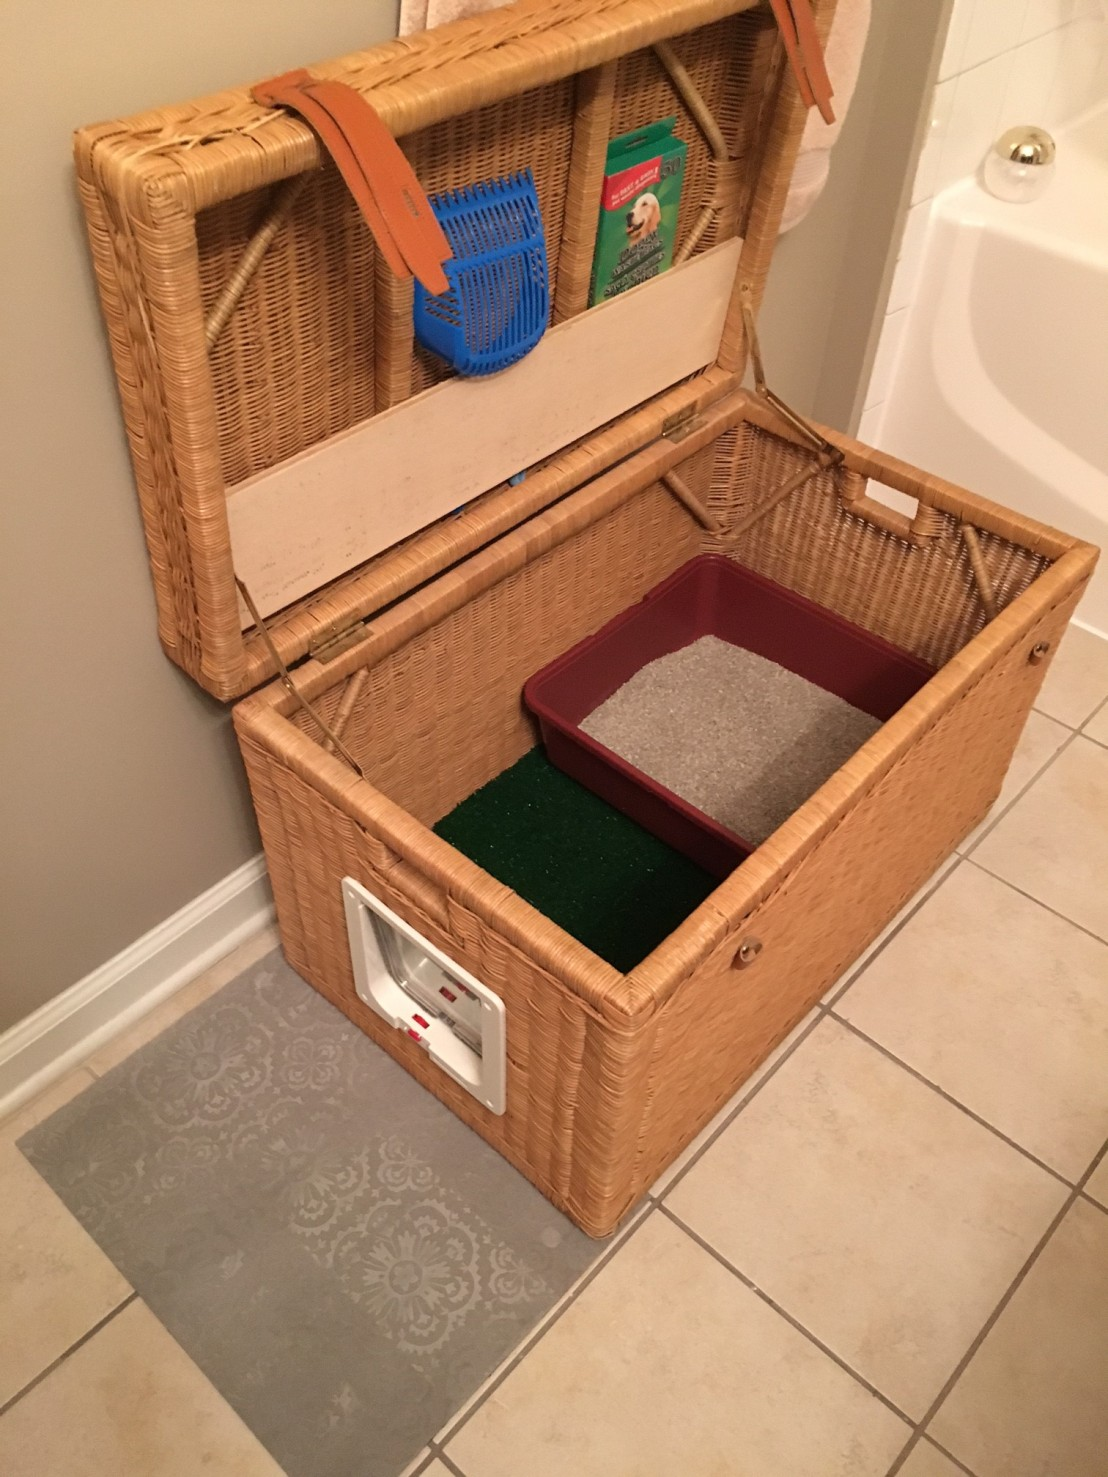 cool kitty litter boxes turn a basket into a cat litter box great project to 39hide39 bookcase climber litter box